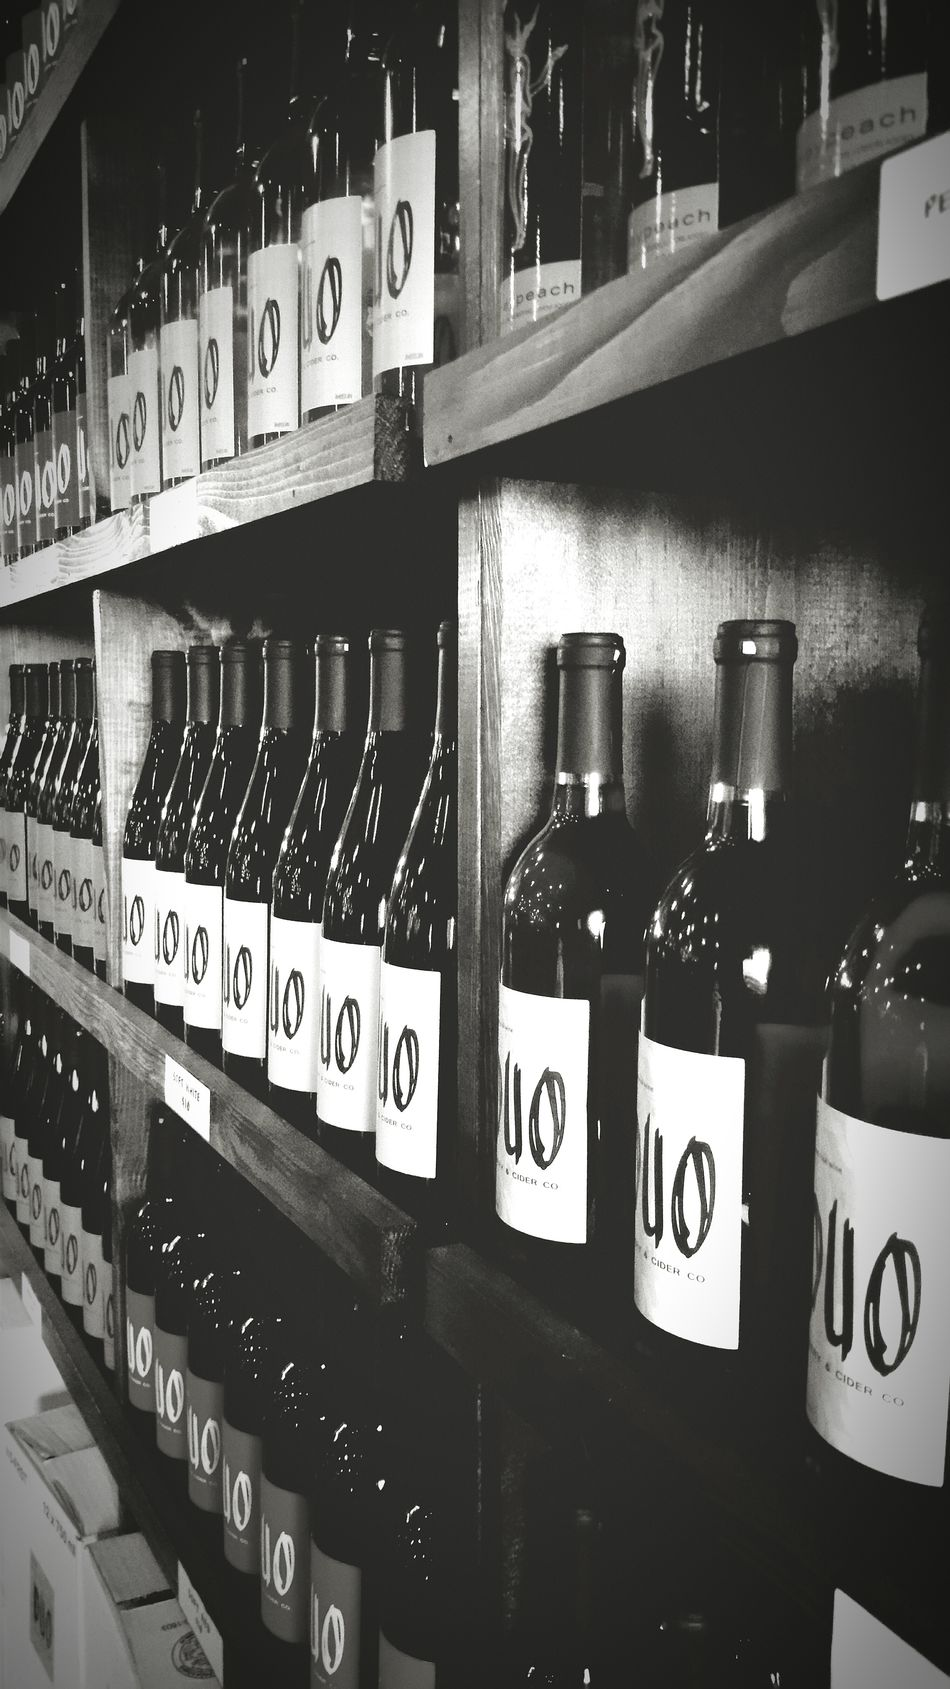 Wine Bottle Alcohol Drink Bottle In A Row No People Shelf Label Text Business Finance And Industry Alternative Medicine Wine Indoors  Liquor Store Close-up